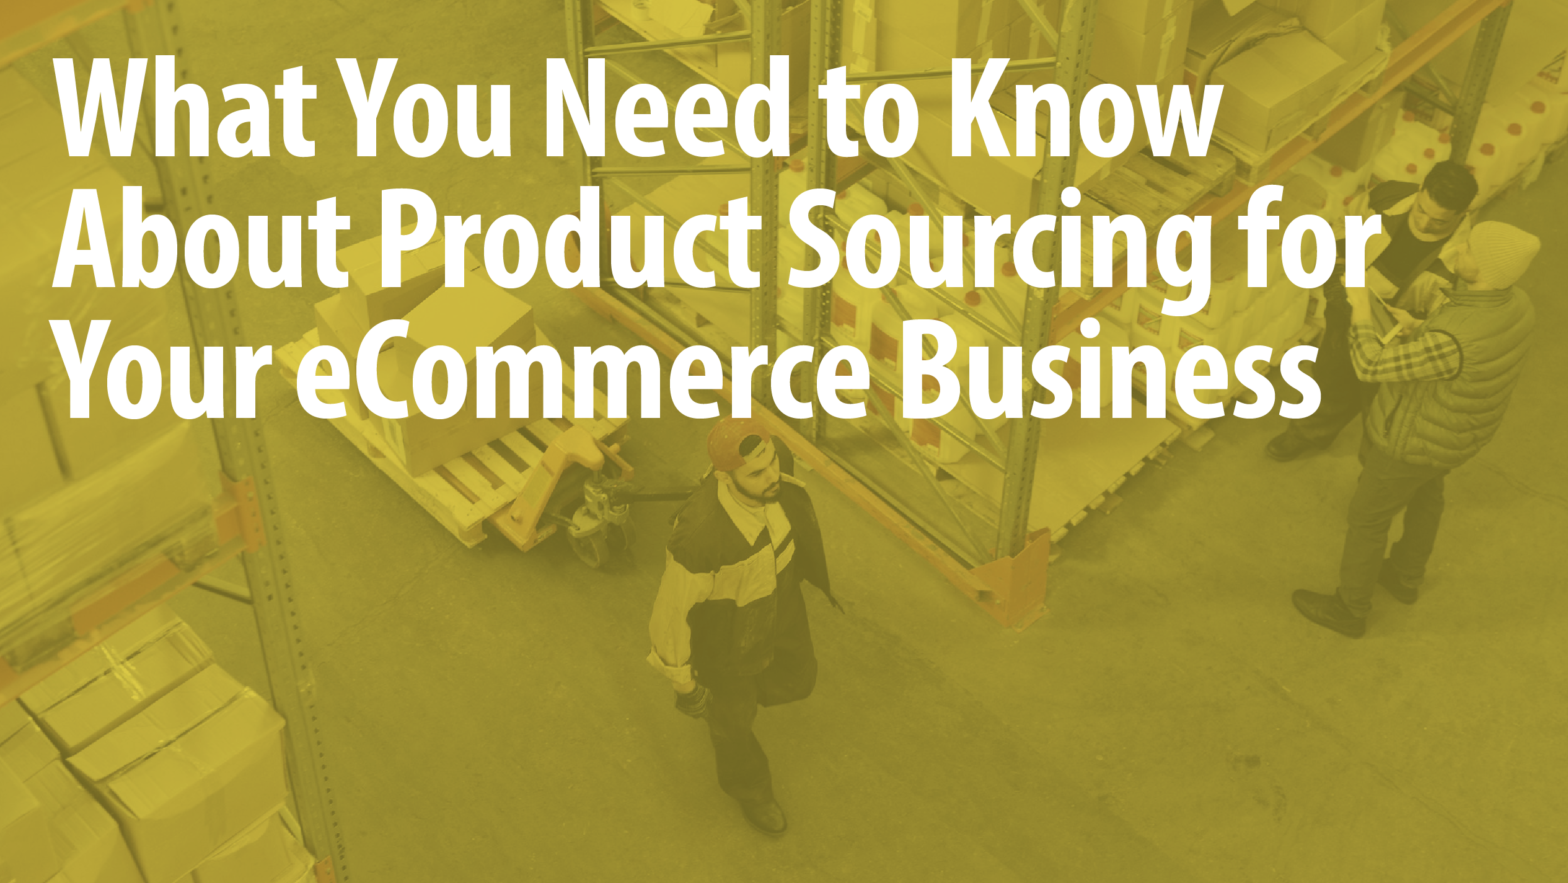 Product Sourcing Article Header